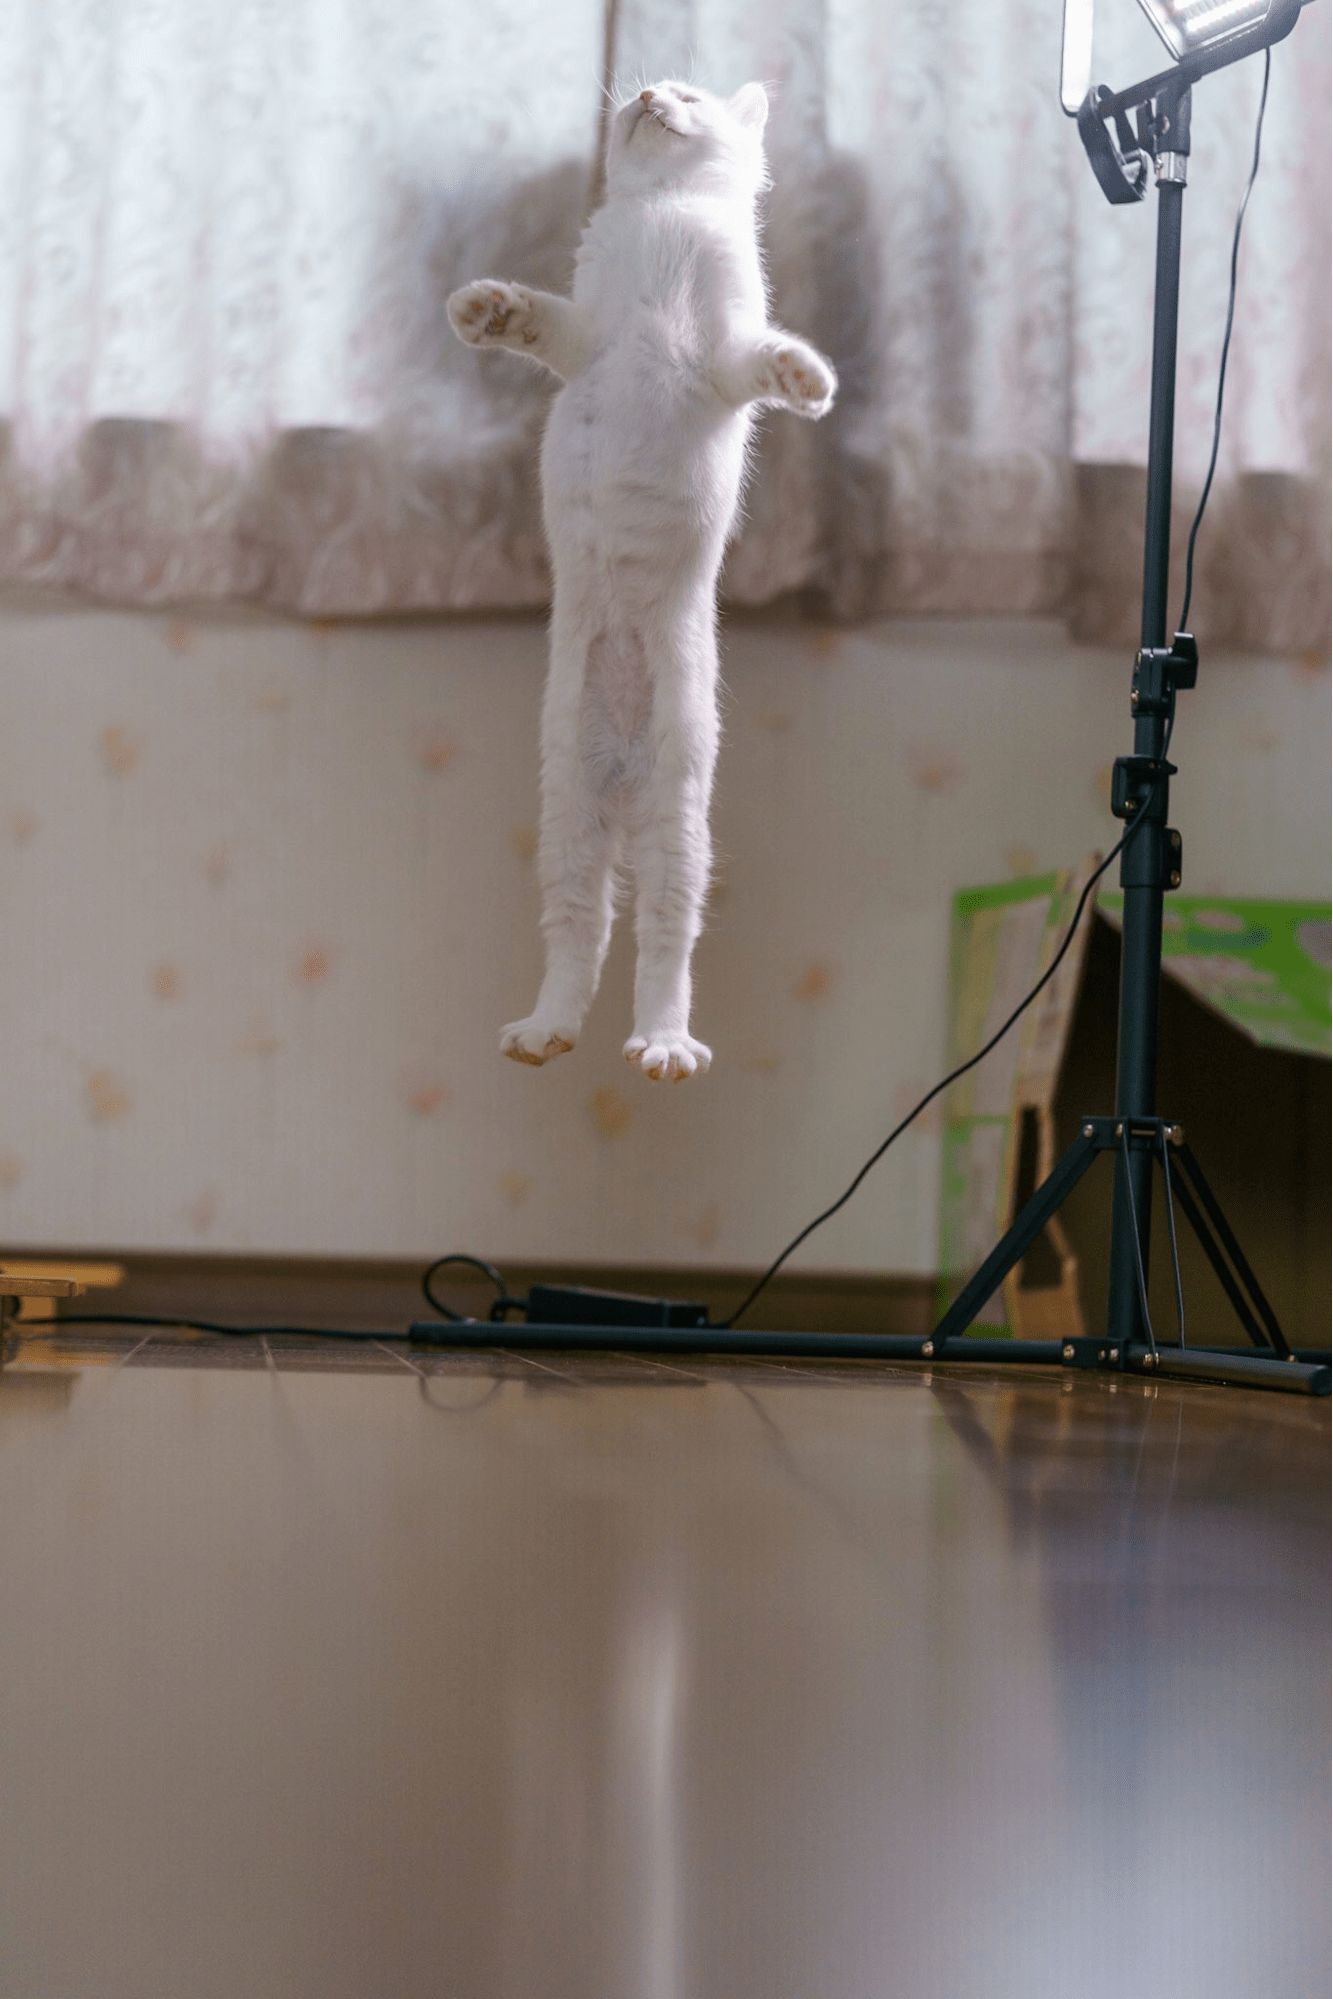 action japanese cat - defies gravity